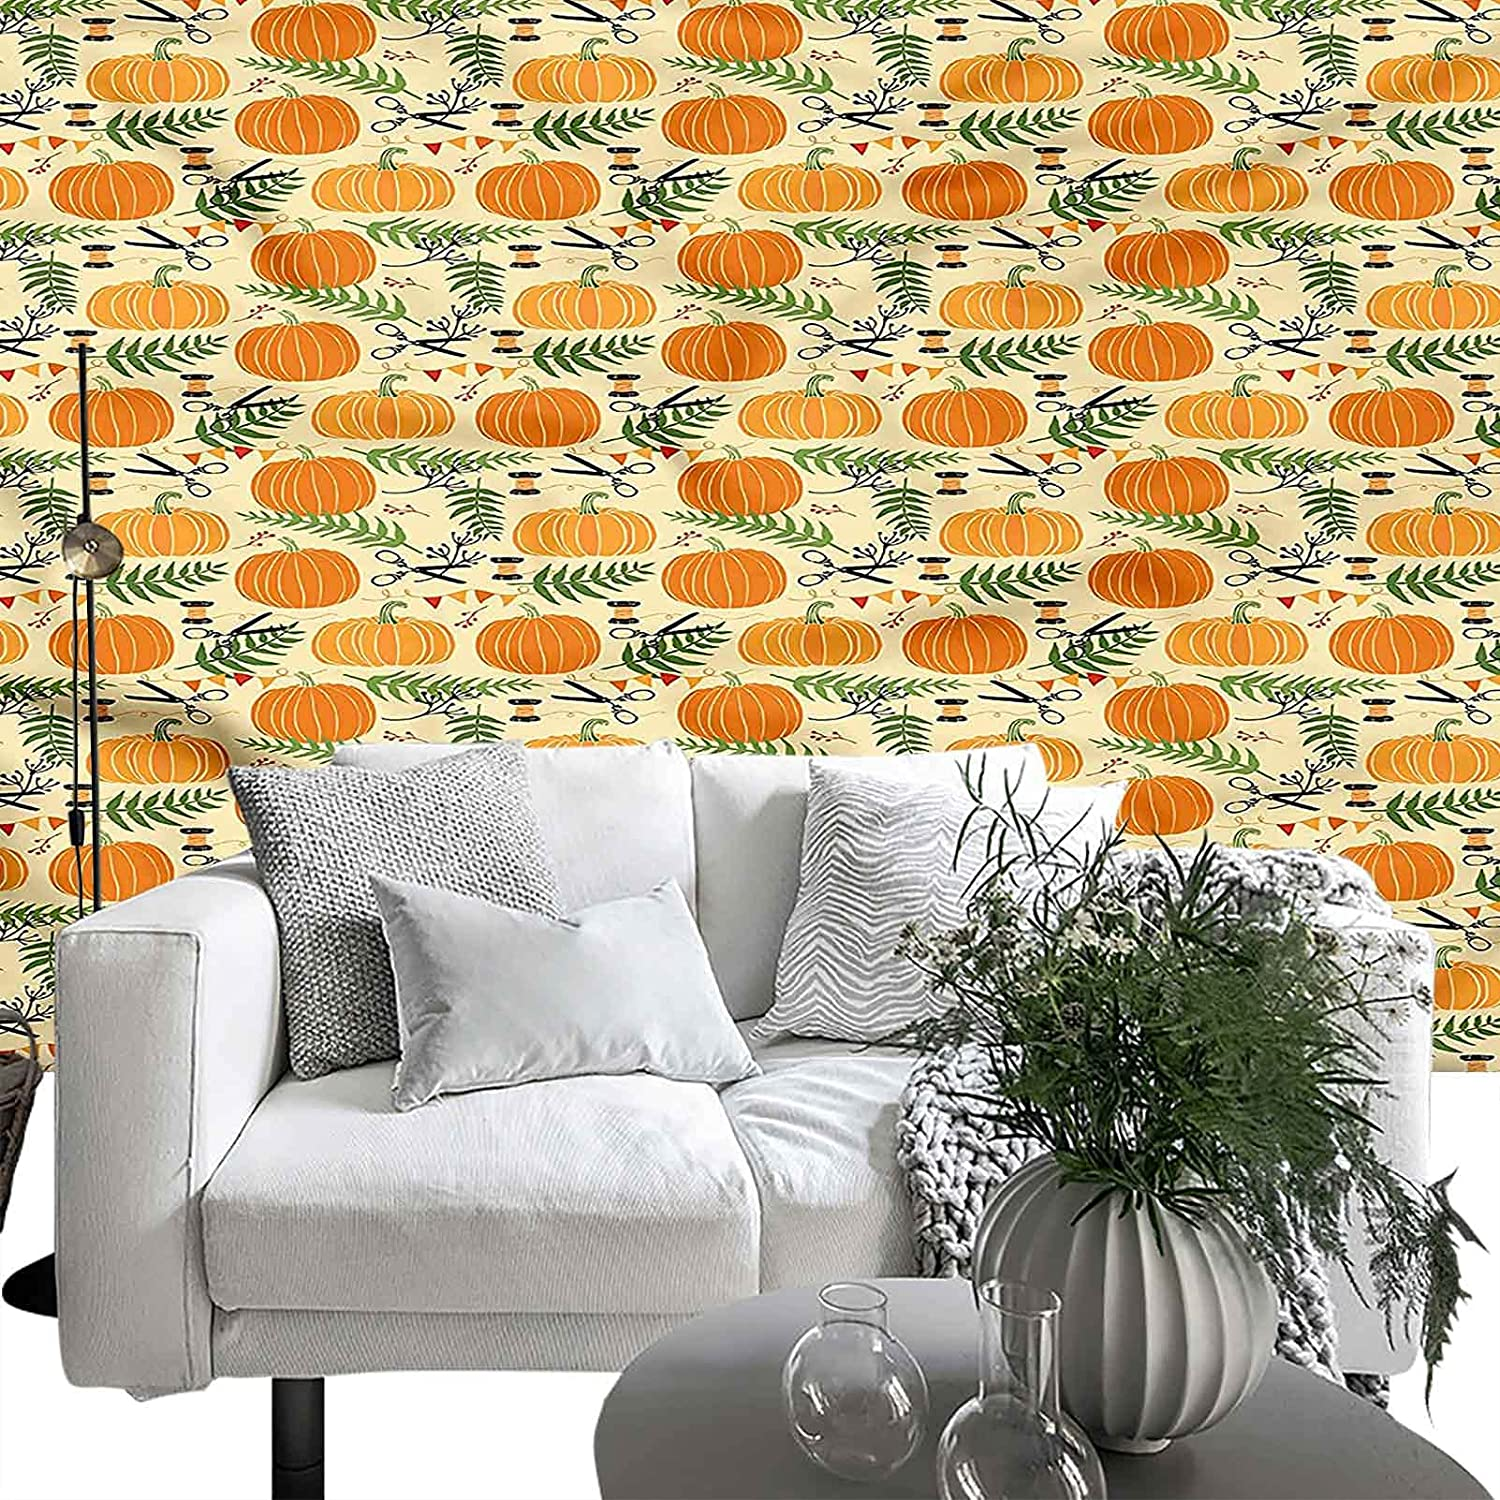 Wallpaper Wall Pumpkin Festive Ornaments 66x96 Sales of SALE items Brand new from new works inches Eas Plants